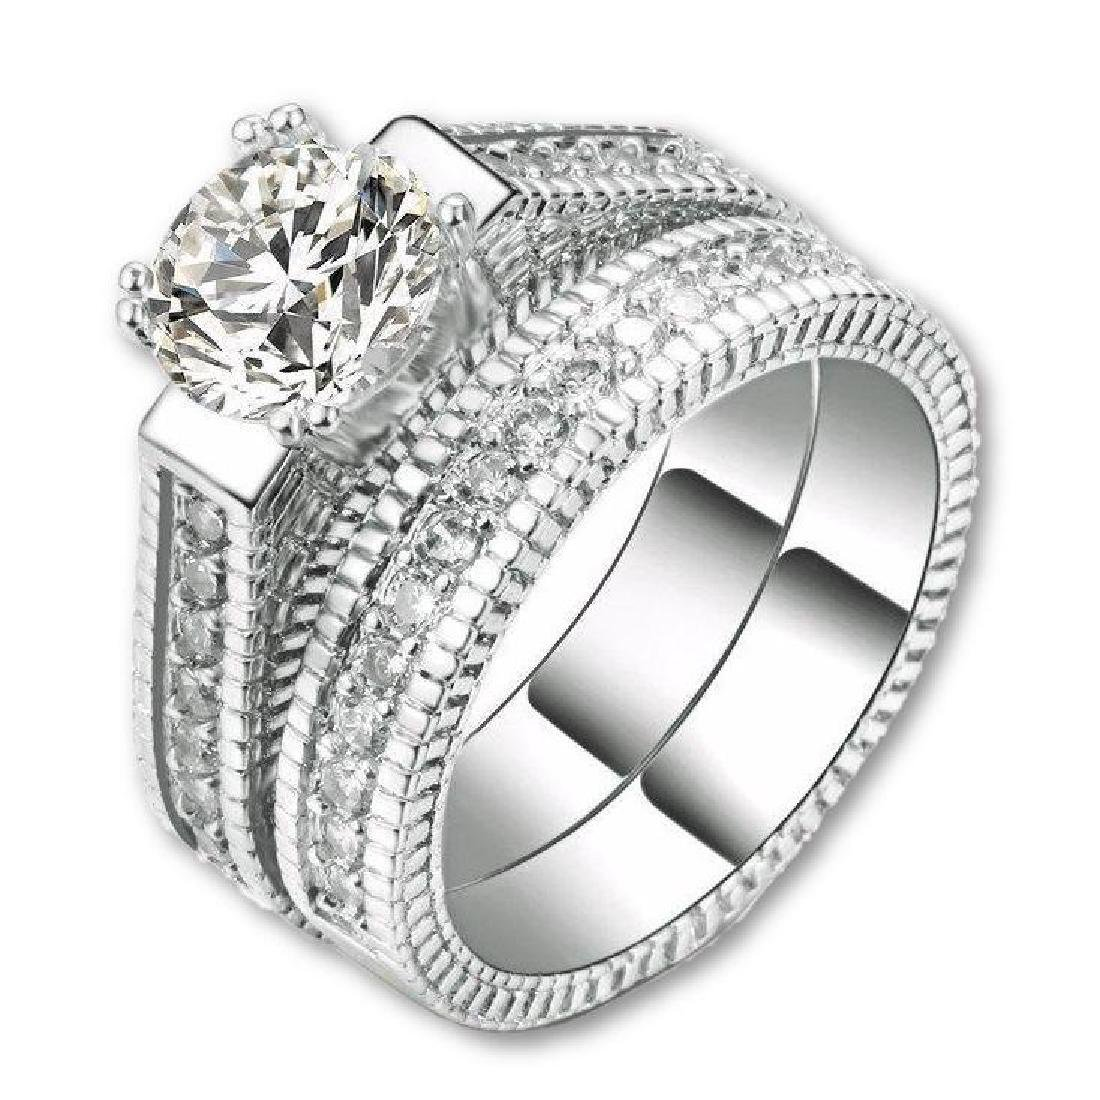 Two Rounds Cubic Zirconia Platinum Clad Ring